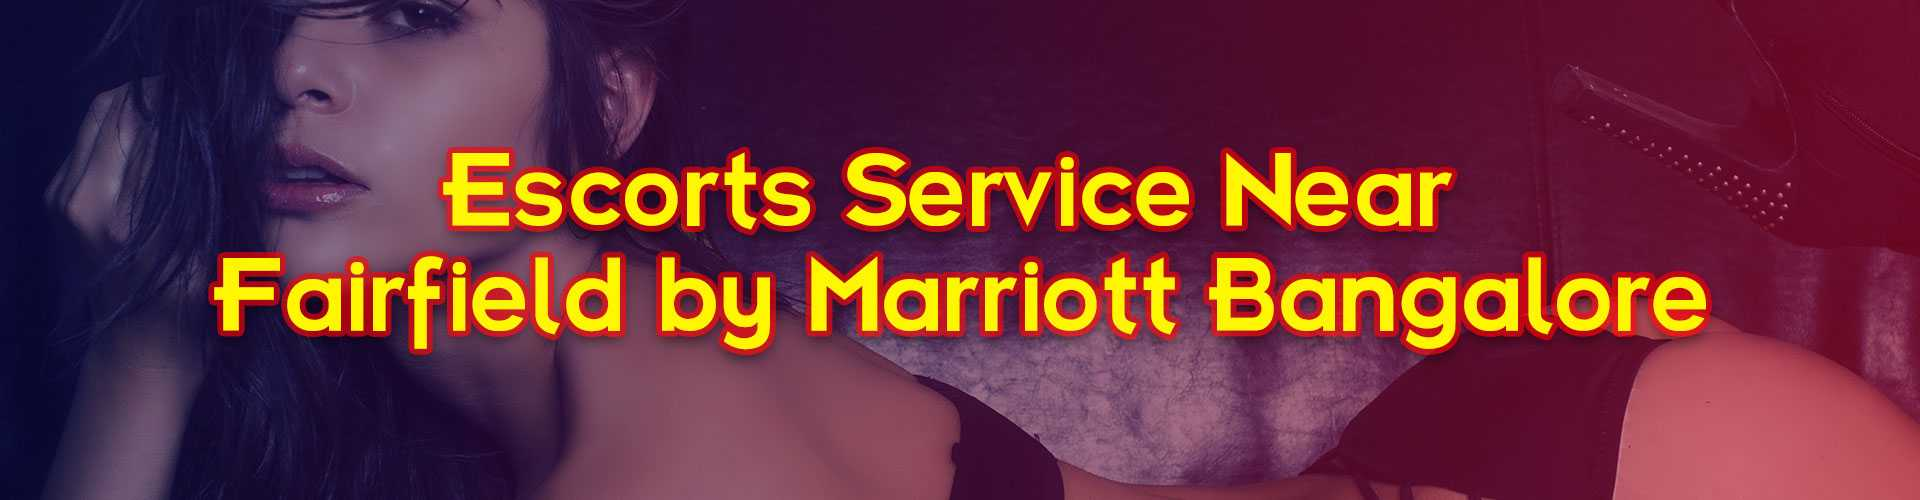 near Fairfield by Marriott escorts